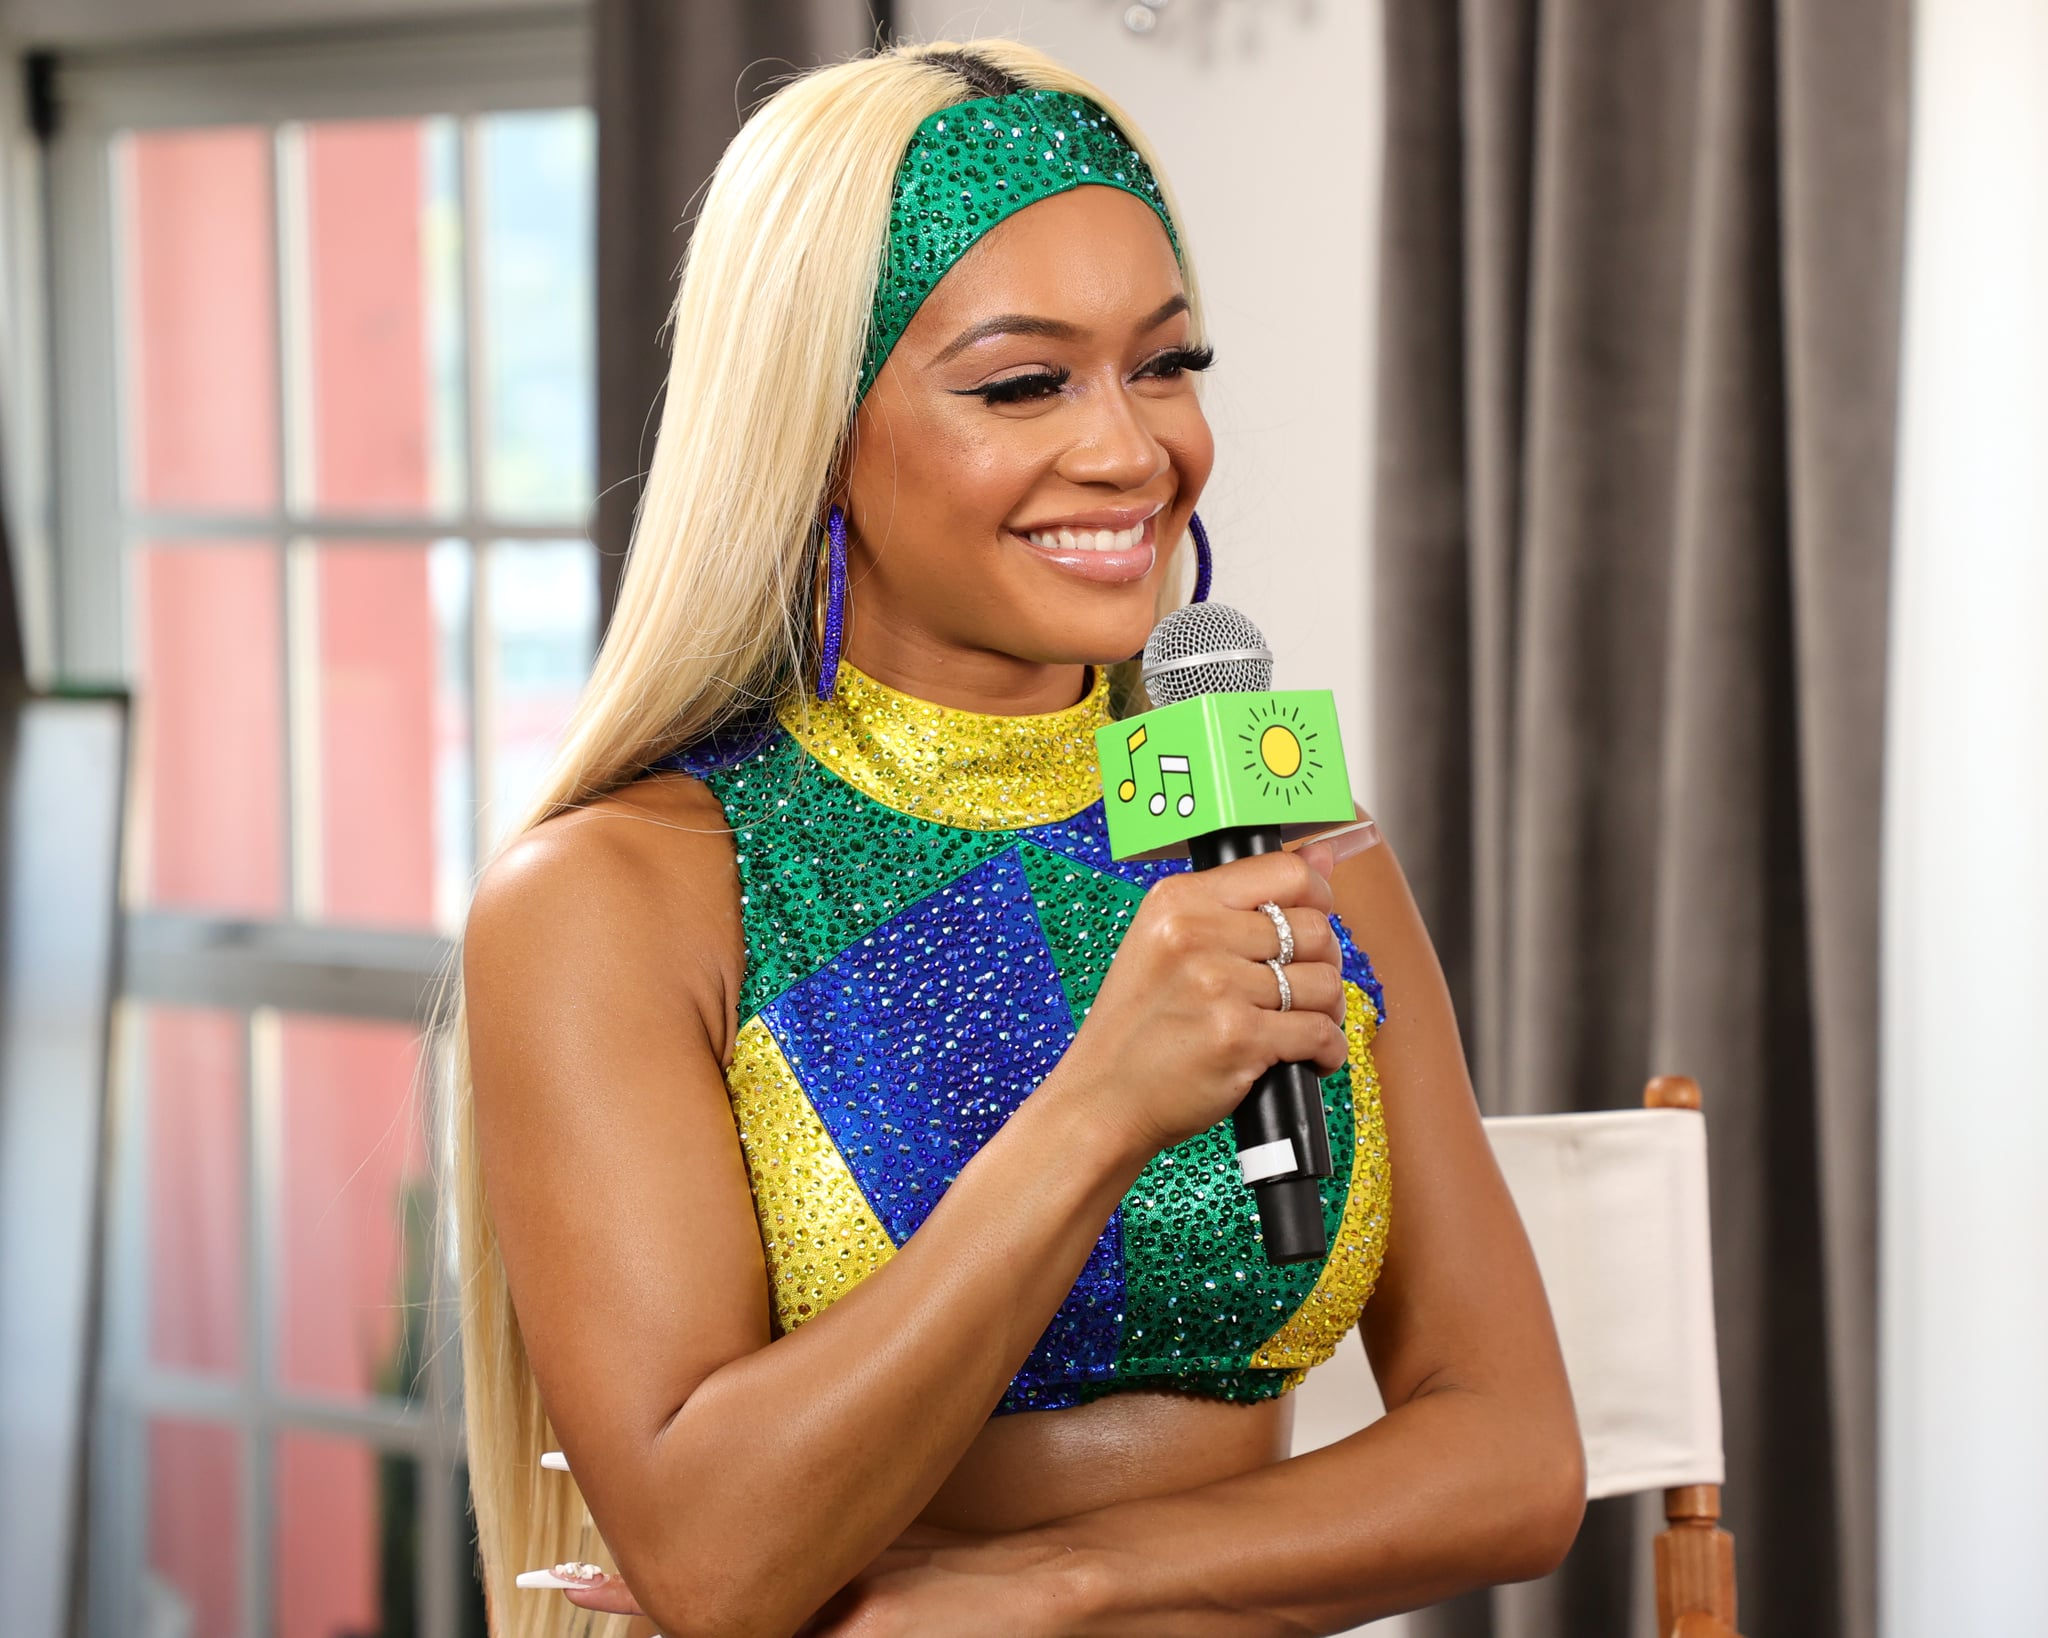 LOS ANGELES, CALIFORNIA - AUGUST 12: Saweetie speaks backstage at Sprite's Live from the Label Virtual Concert Series headlined by multi-platinum-selling songwriter & rapper Saweetie at the Hollywood Roosevelt on August 12, 2021 in Los Angeles, California. (Photo by Rich Fury/Getty Images for Sprite)